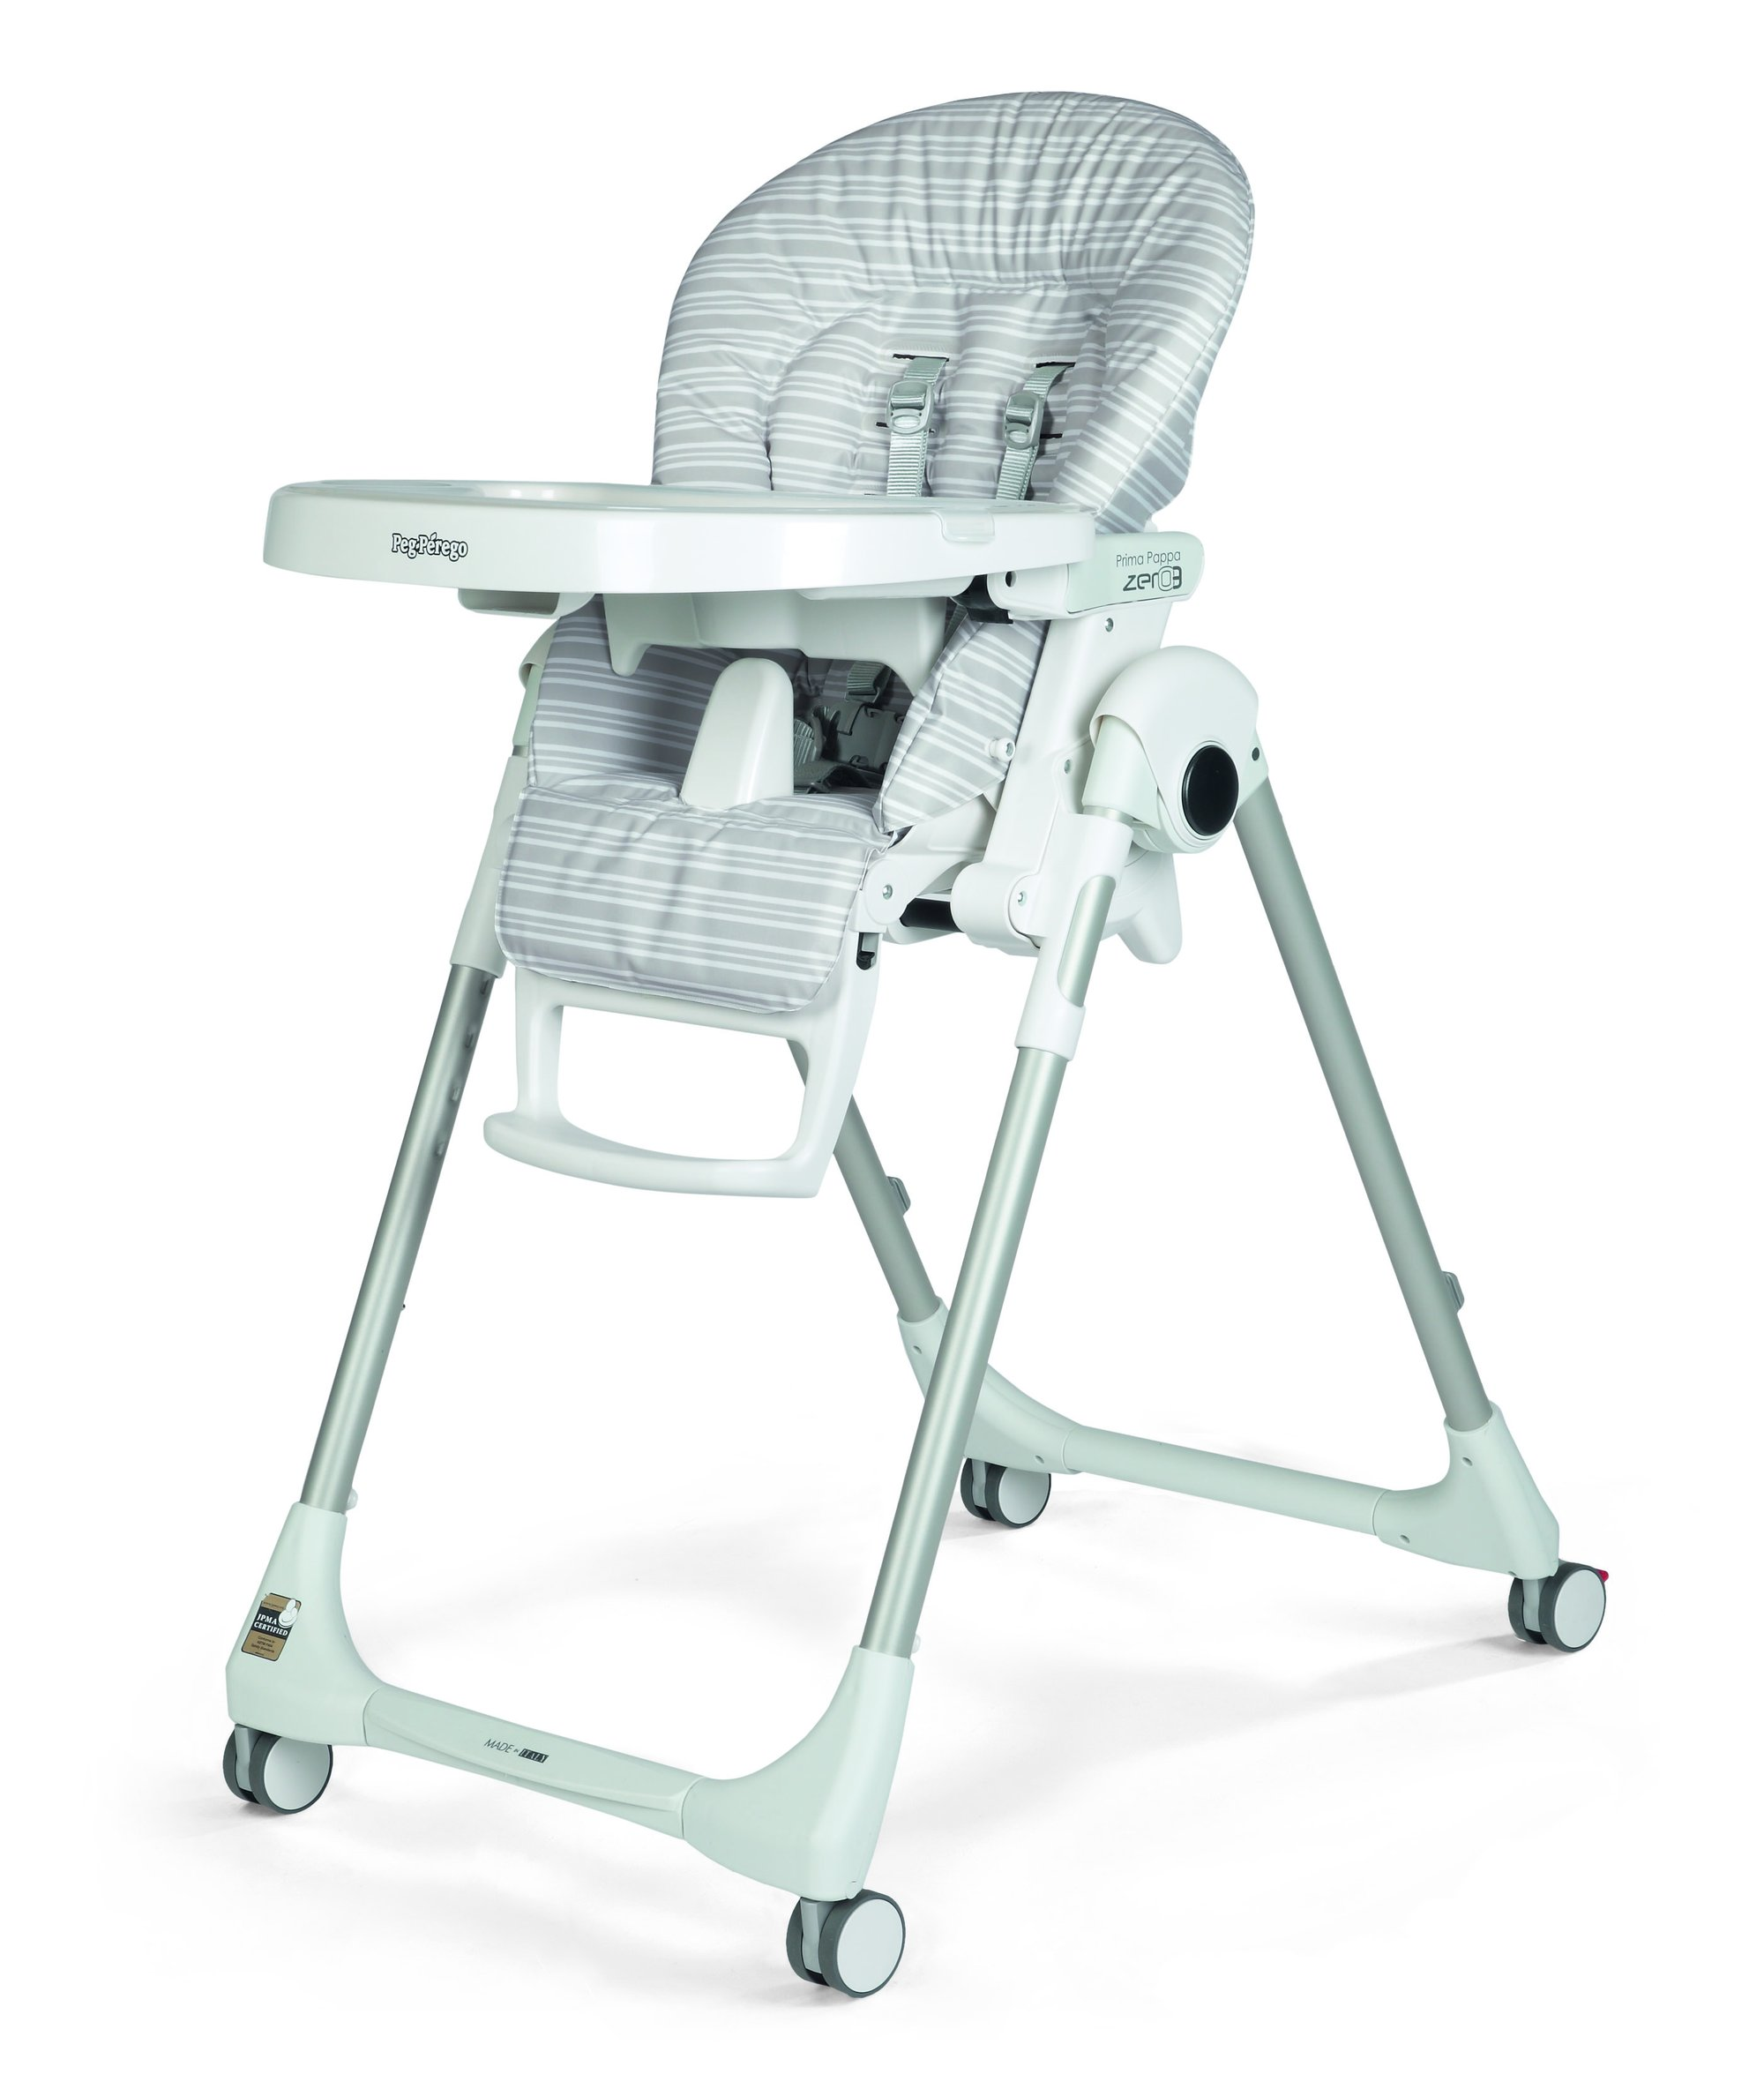 Peg Perego Prima Pappa Zero3 High Chair - Linear Grey